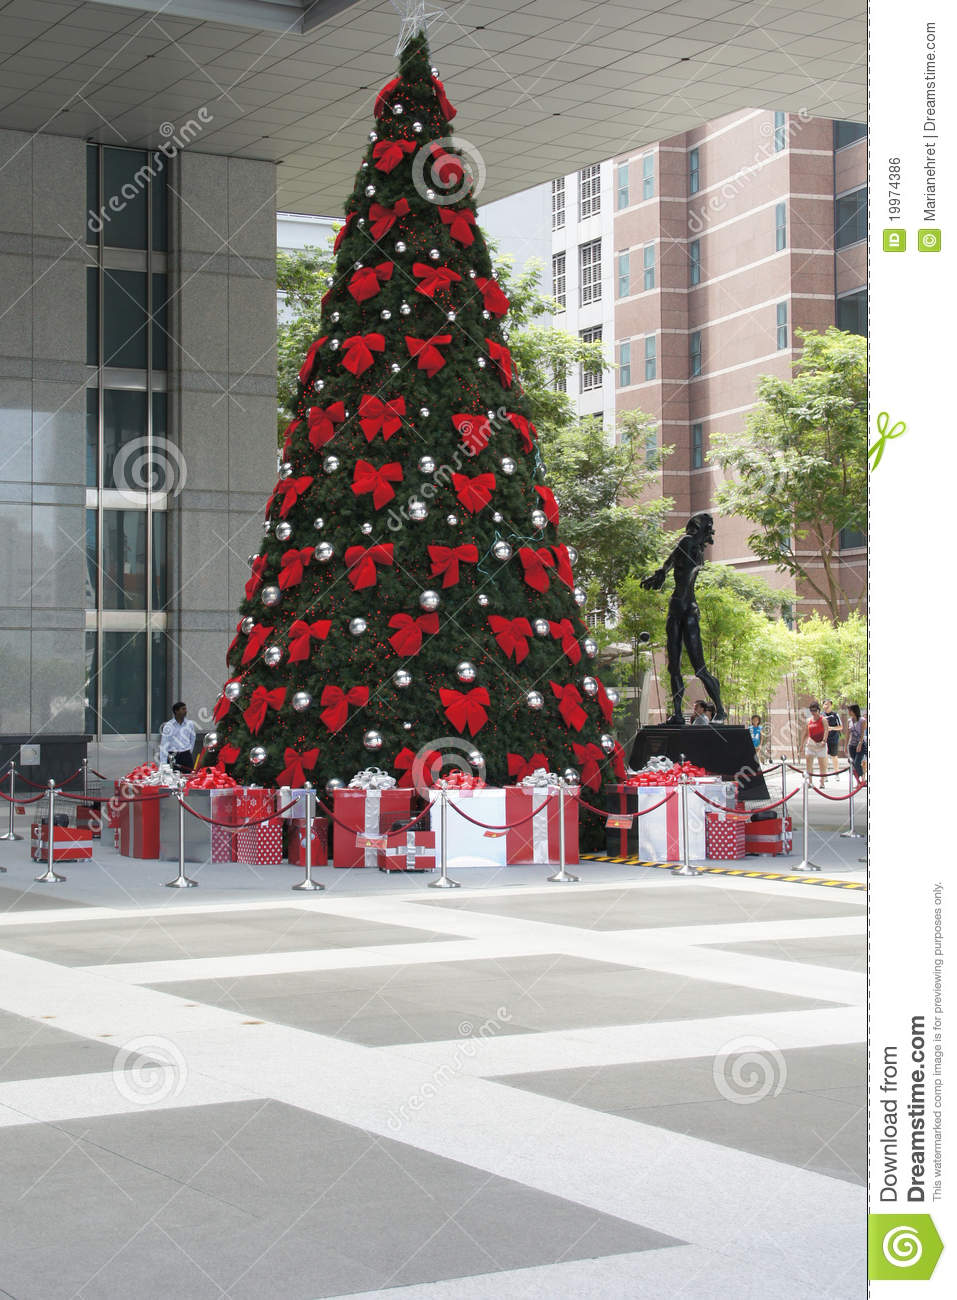 editorial stock photo - Christmas Tree Shopping